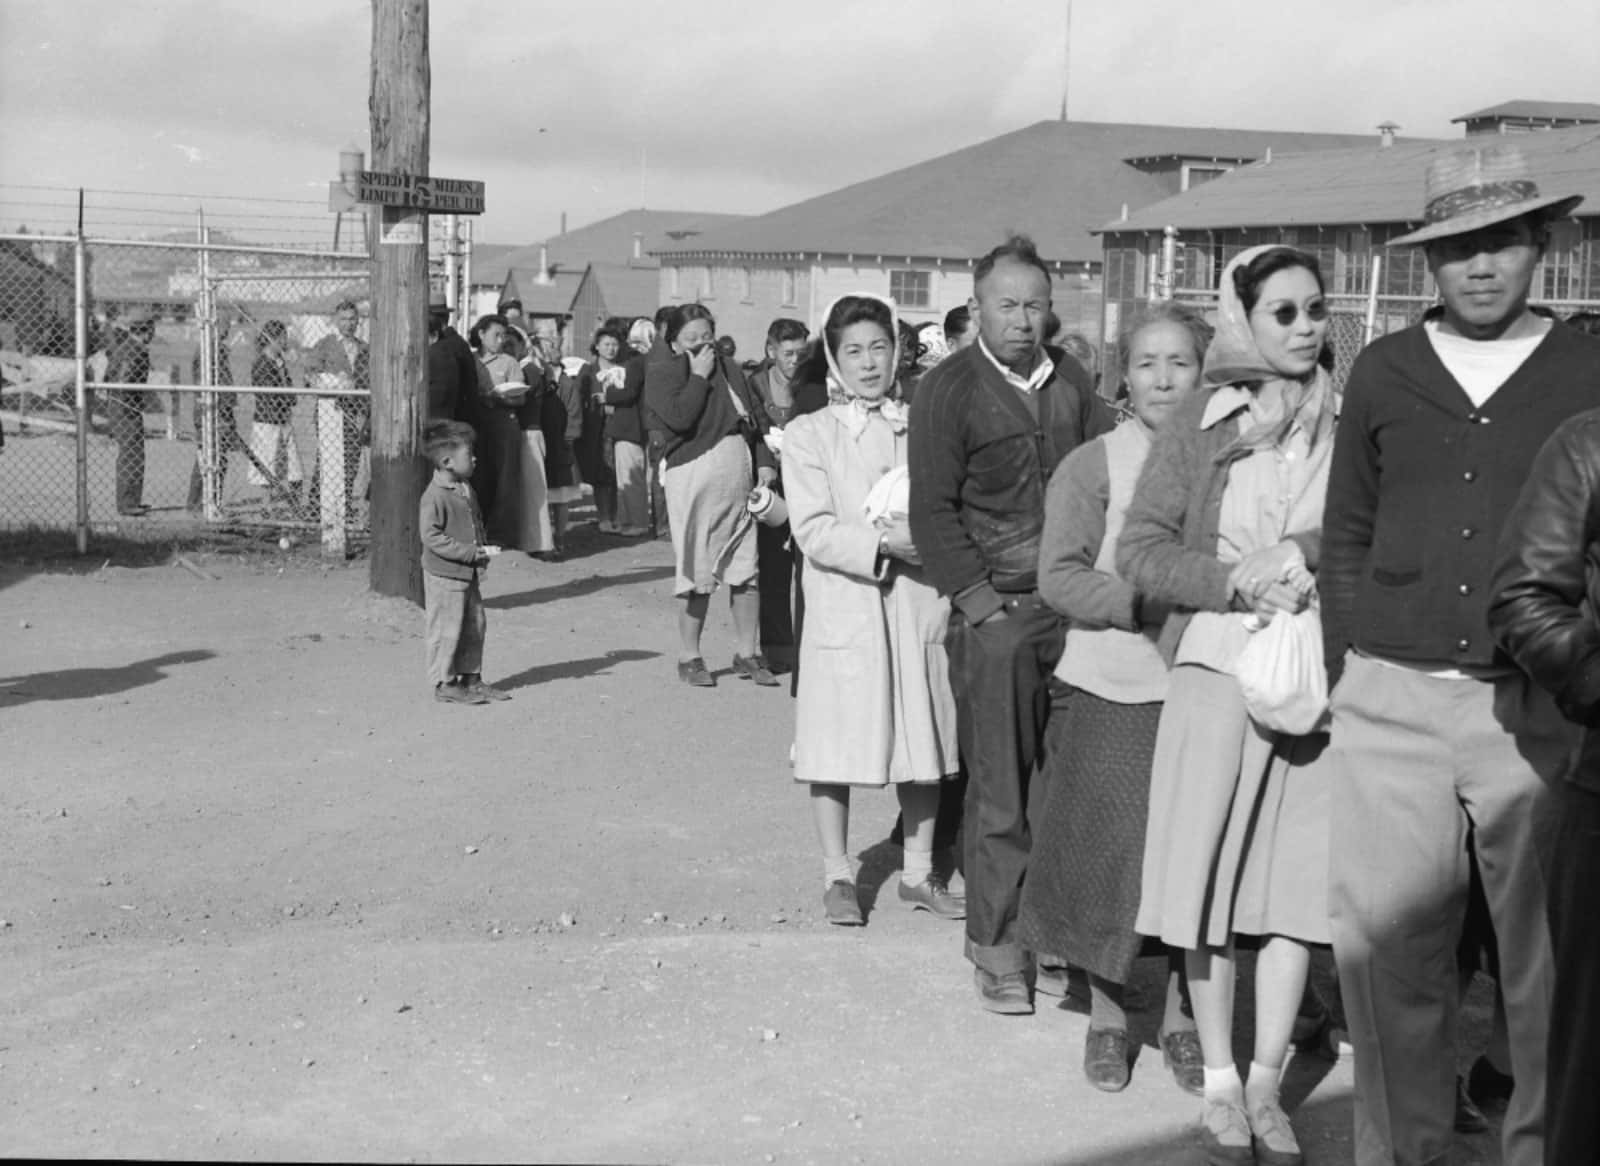 Archival photo of Japanese internment camp waiting in line for a meal